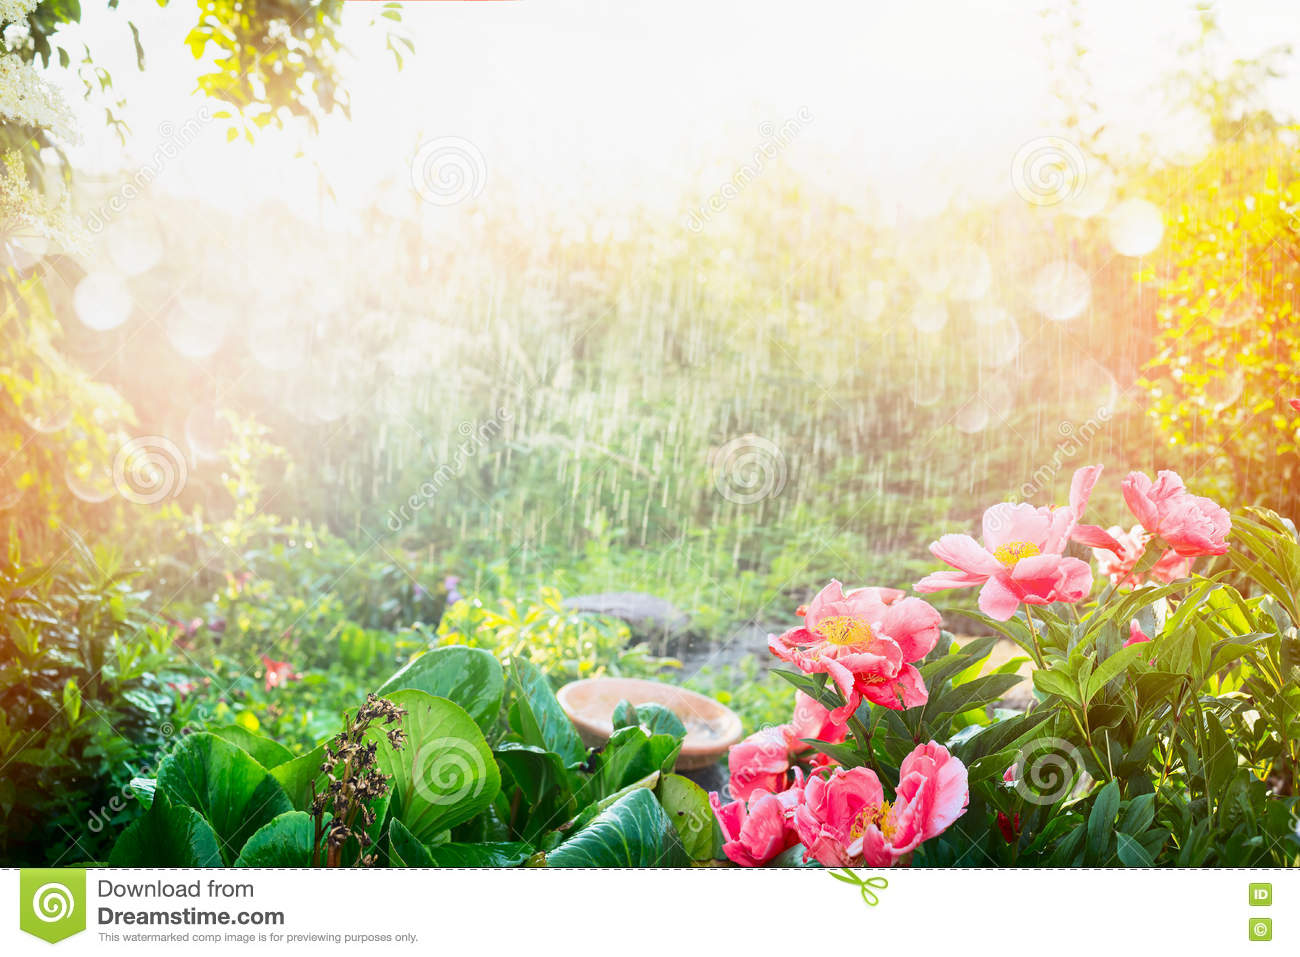 sunlight on the garden Find morning sunlight on tree garden background stock images in hd and  millions of other royalty-free stock photos, illustrations, and vectors in the.